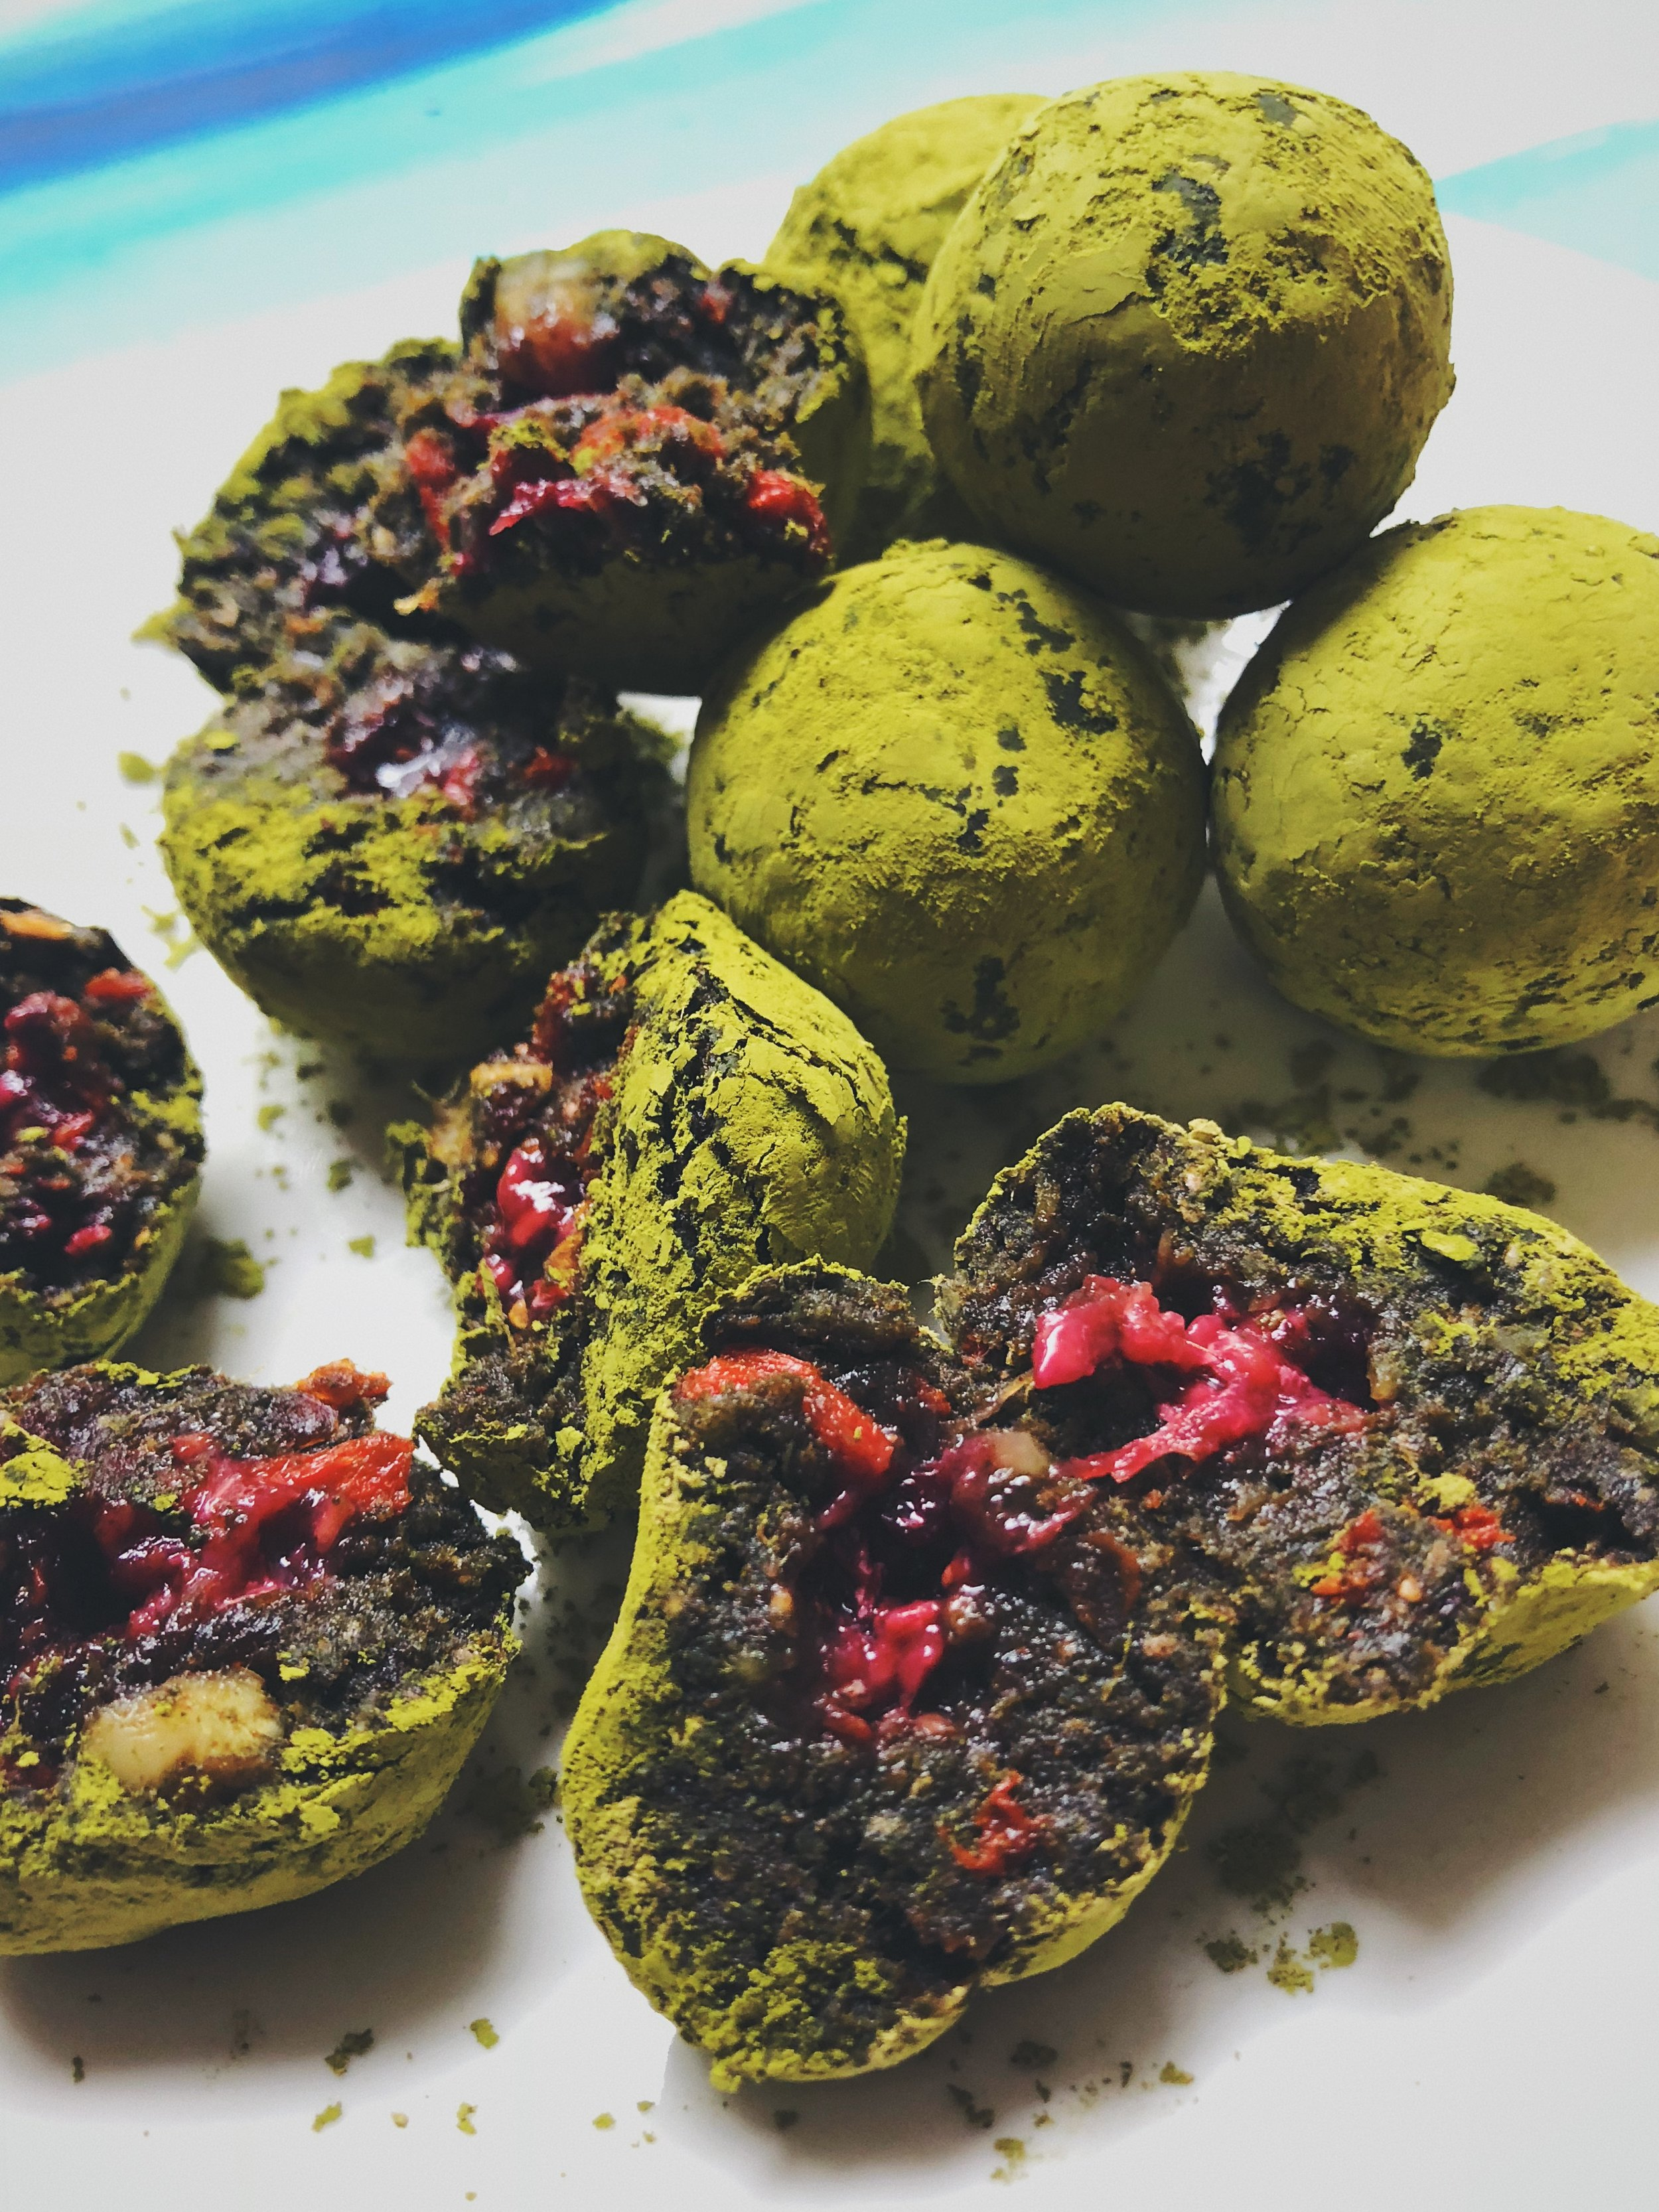 The raspberry jam filling balances so well with the intense grassy matcha.